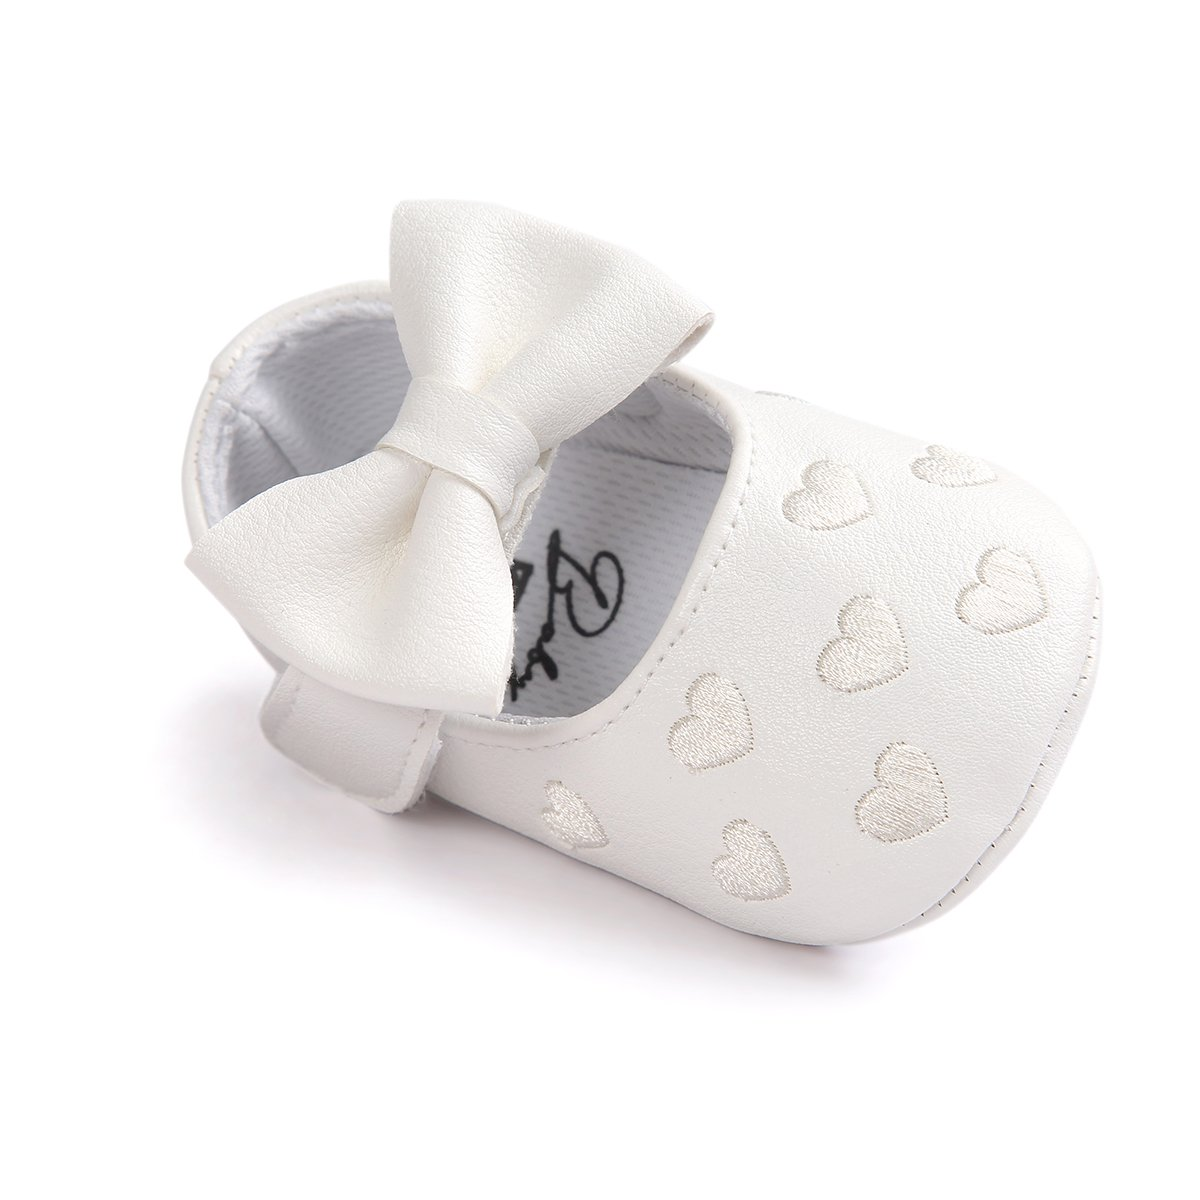 Amazon.com: Itaar Baby Girl Moccasins Bow PU Leather Heart Embroidered Soft Soled Shoes for Infants Toddlers: Baby